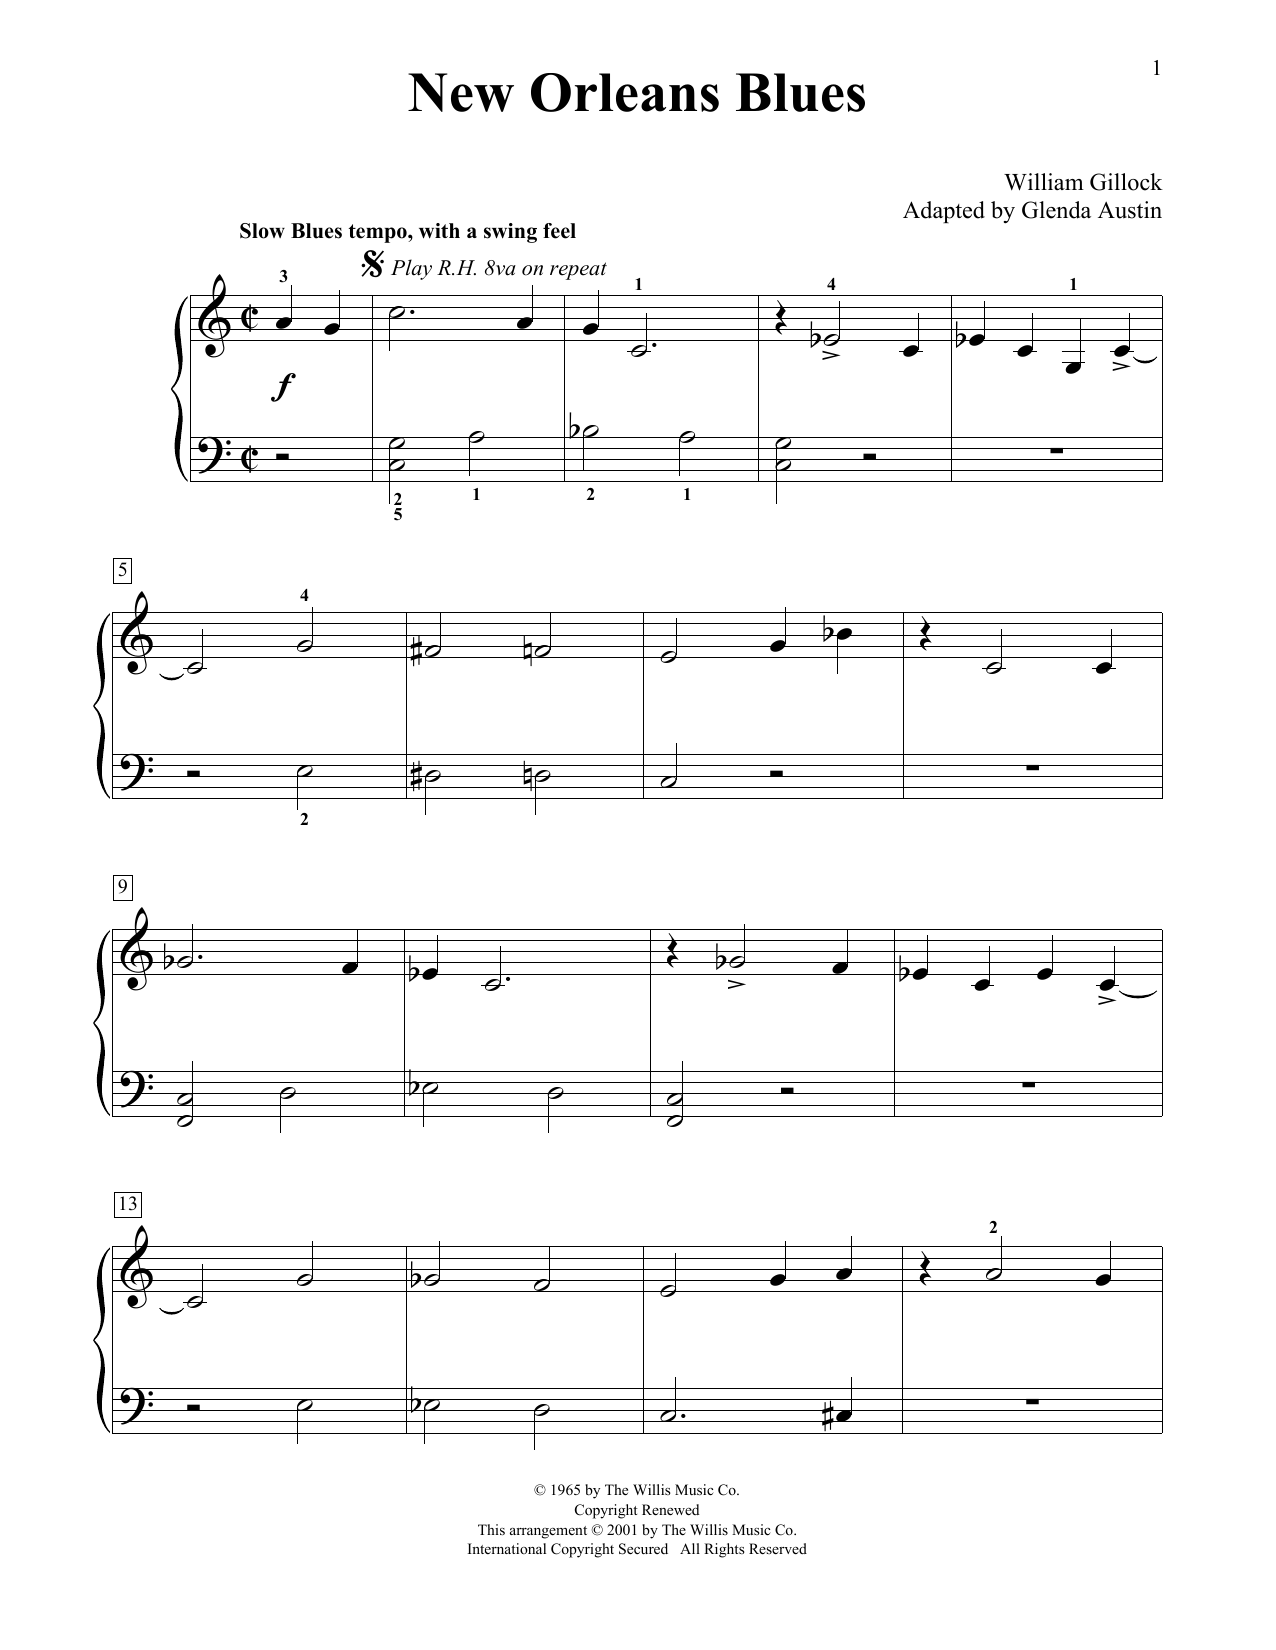 William Gillock New Orleans Blues (Simplified) (adapted by Glenda Austin) sheet music notes printable PDF score